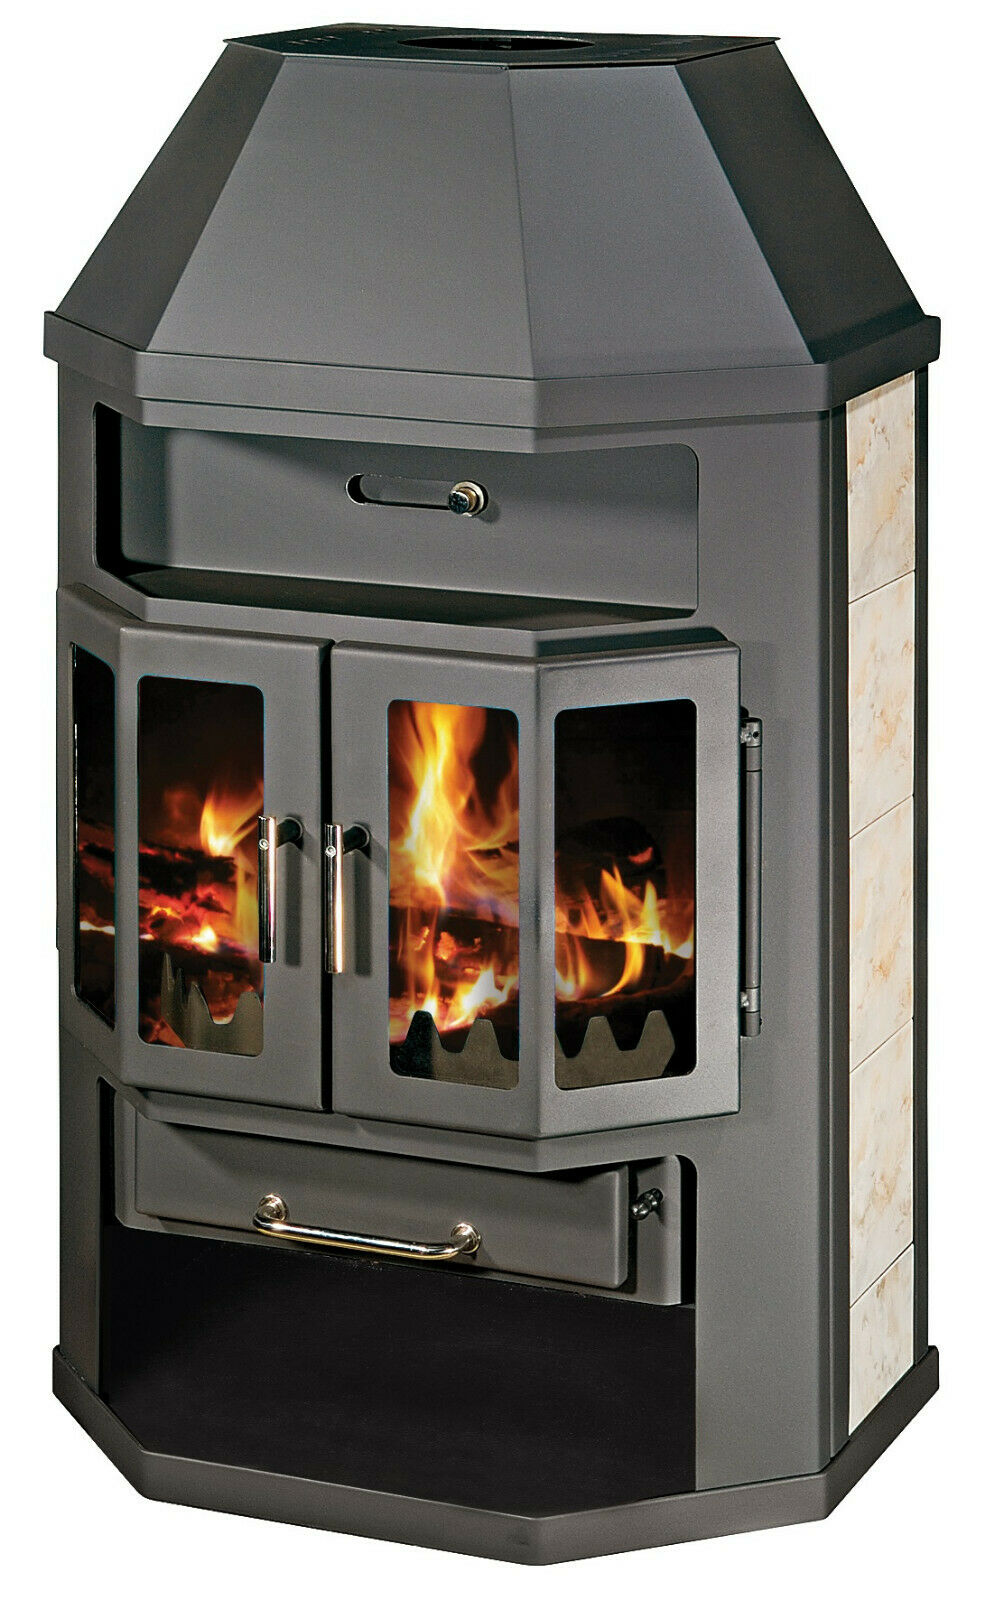 Wood Burning Stove Multi Fuel Log Burner Integral Boiler 18 kW Thermal Output